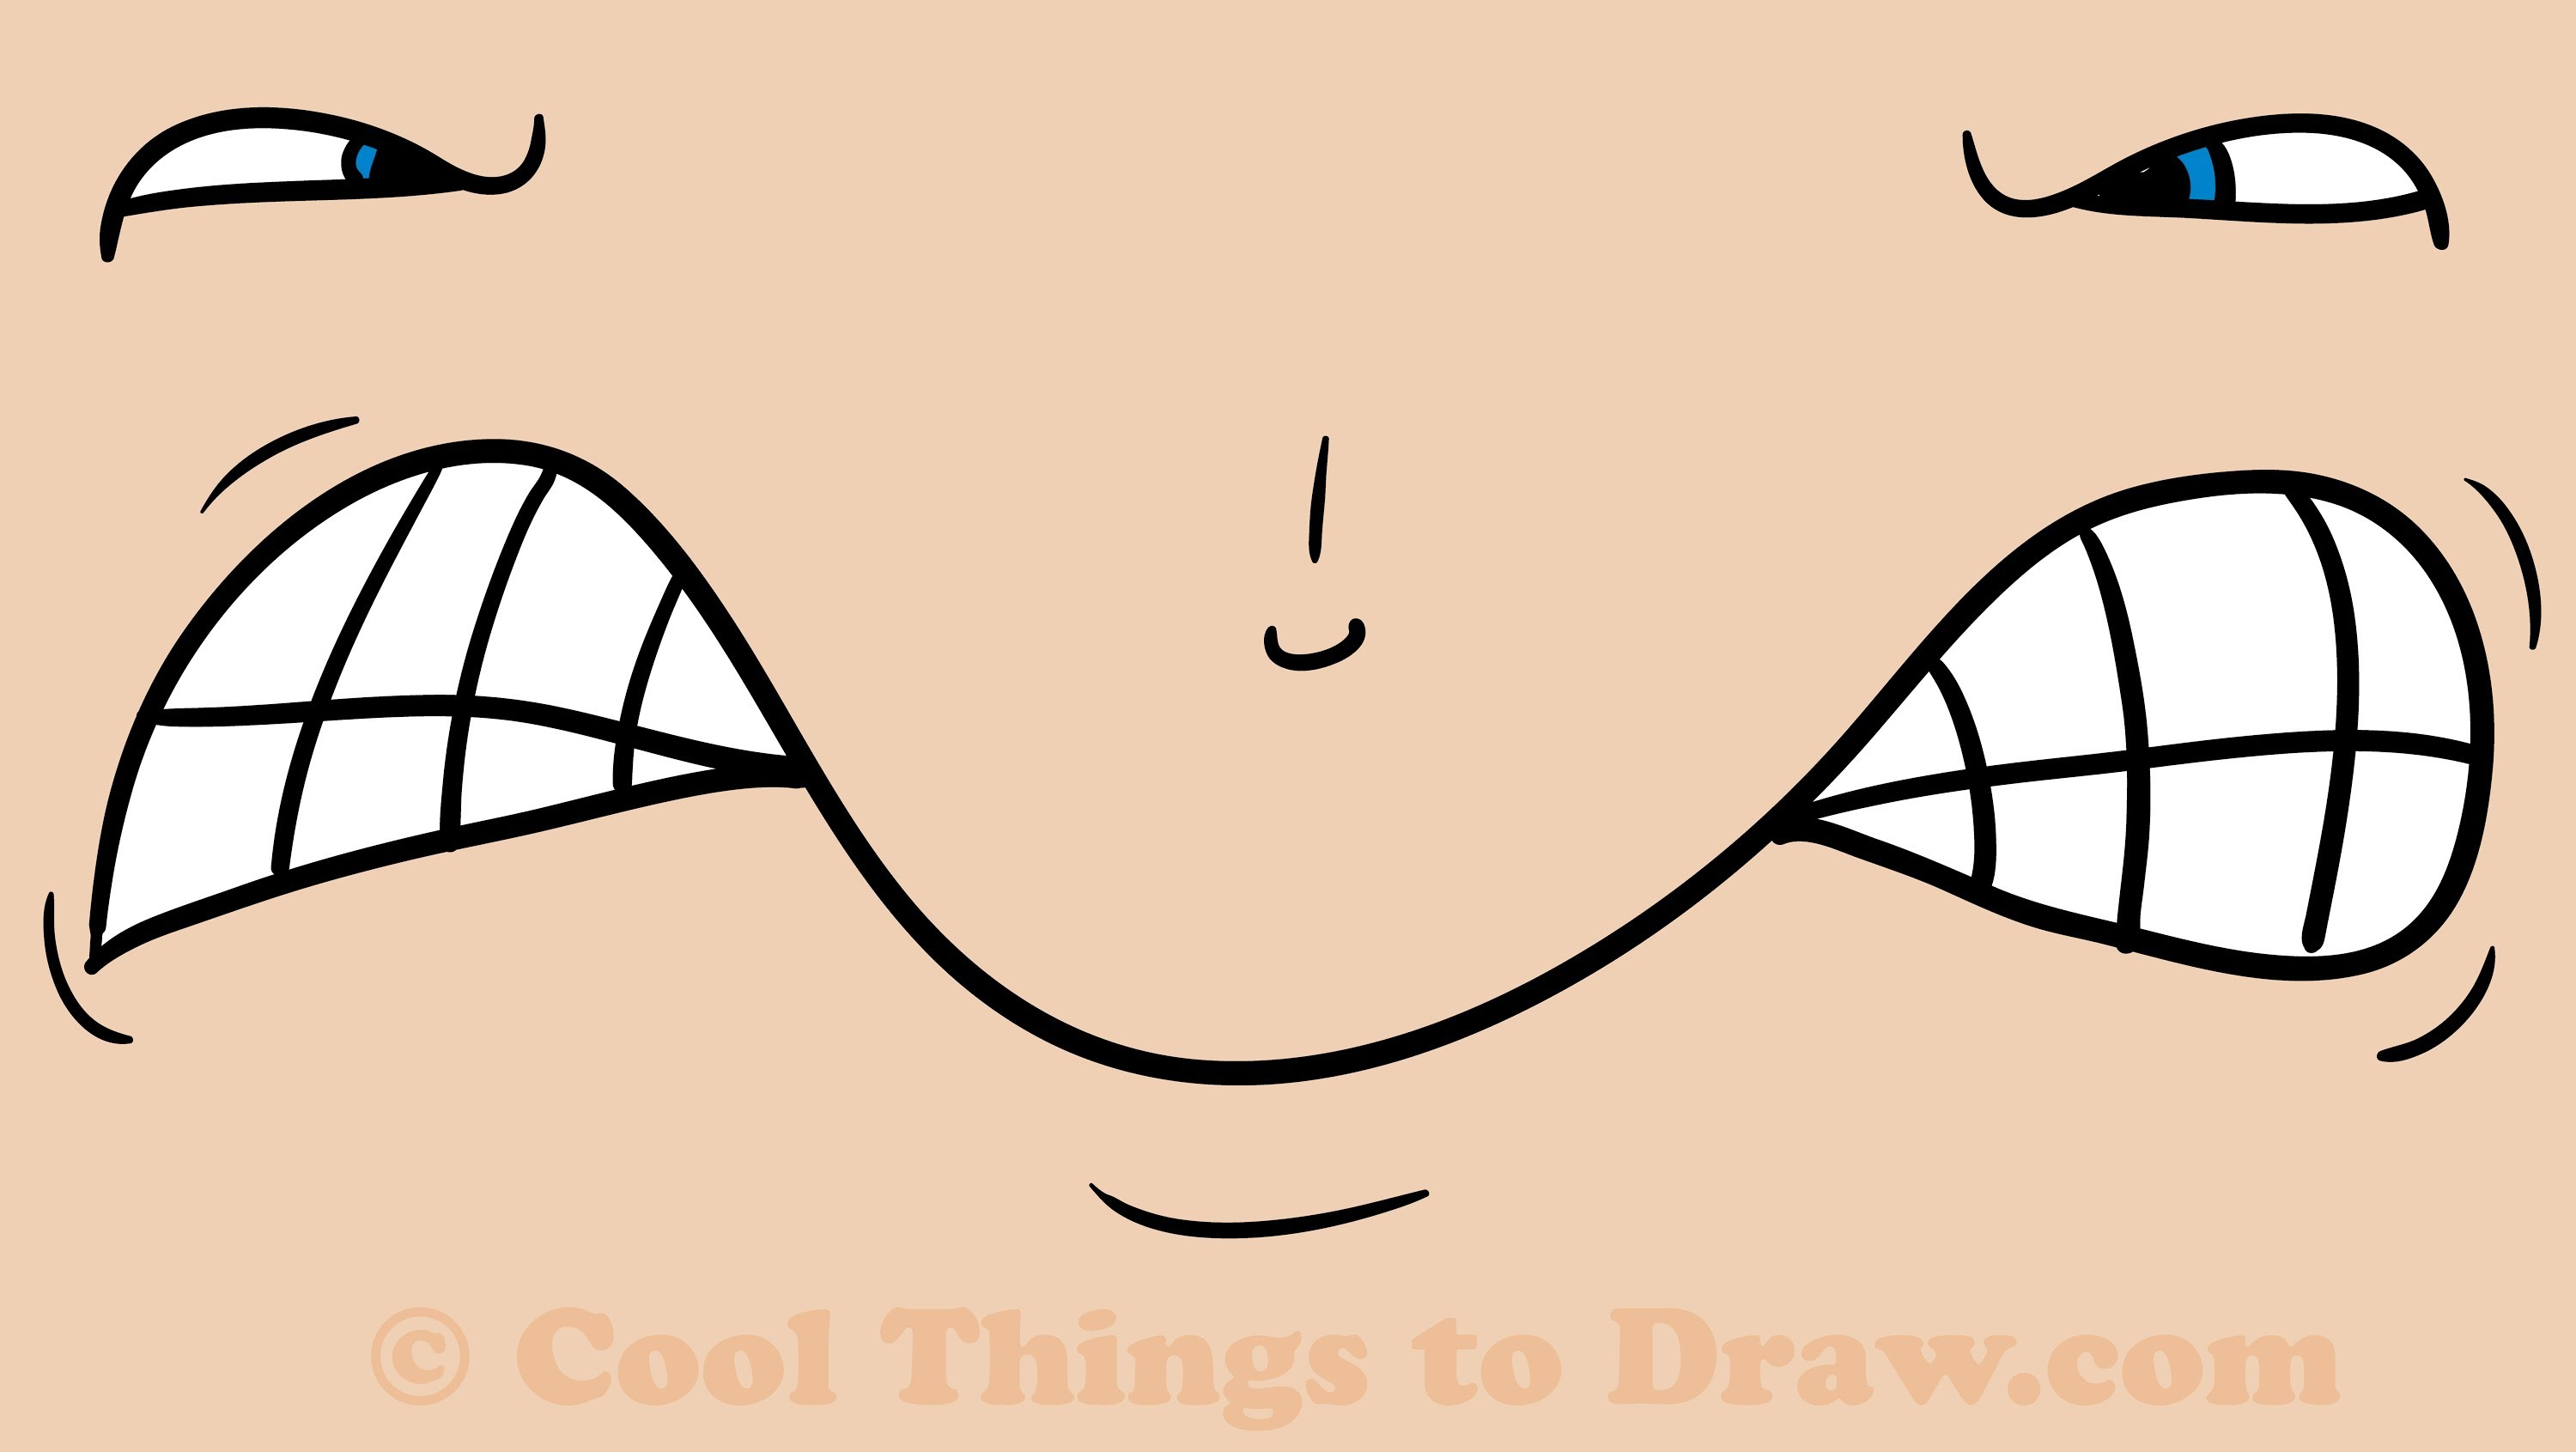 3000x1691 easy things draw for beginners cool things to draw for beginners